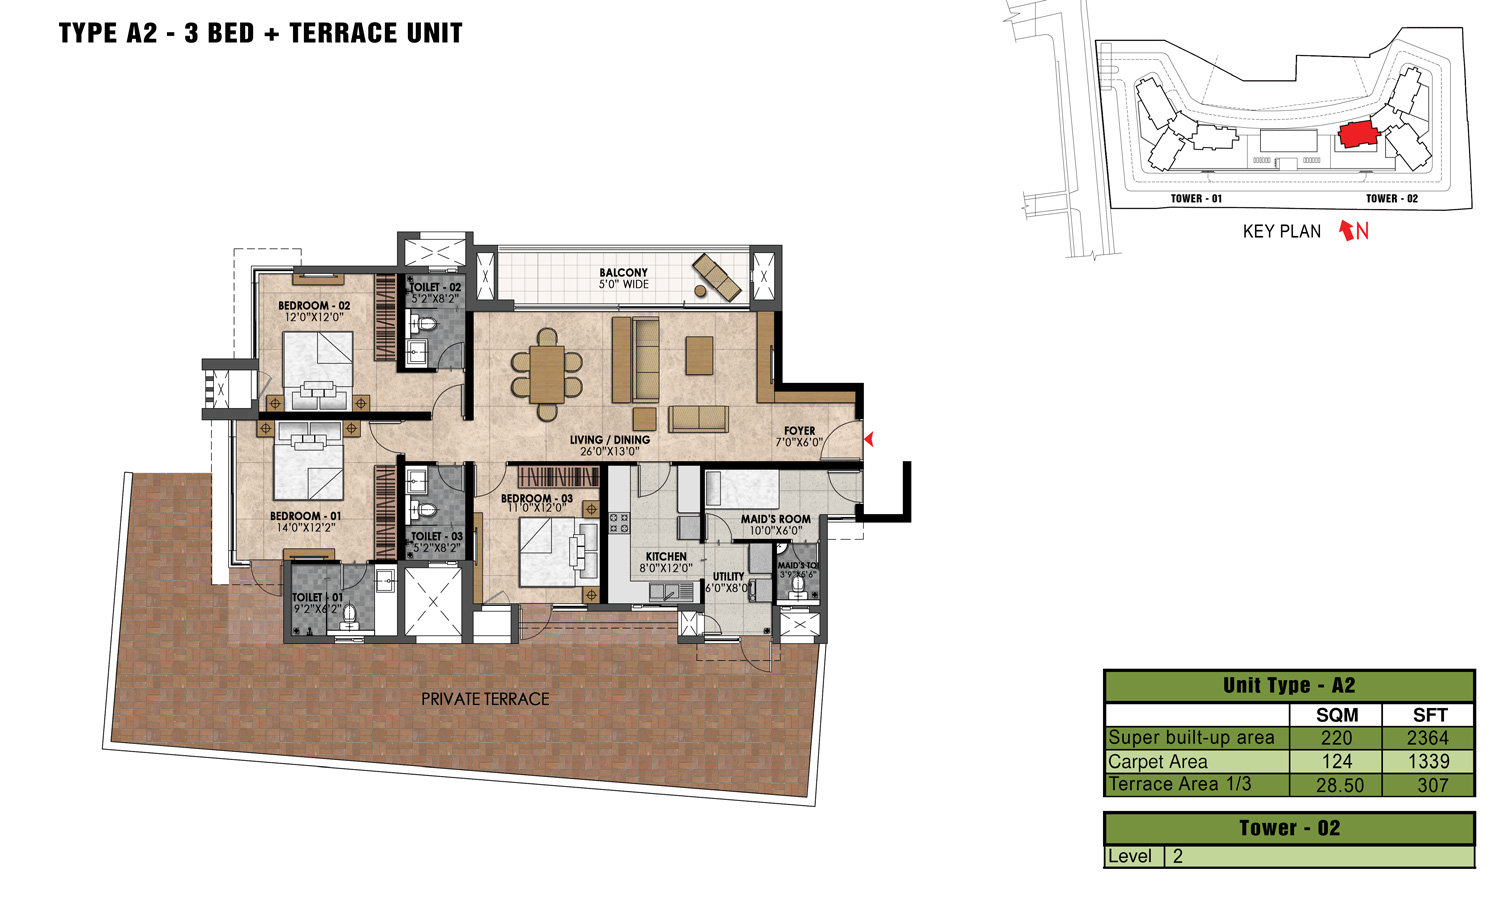 Type A2 - 2364 Sq Ft